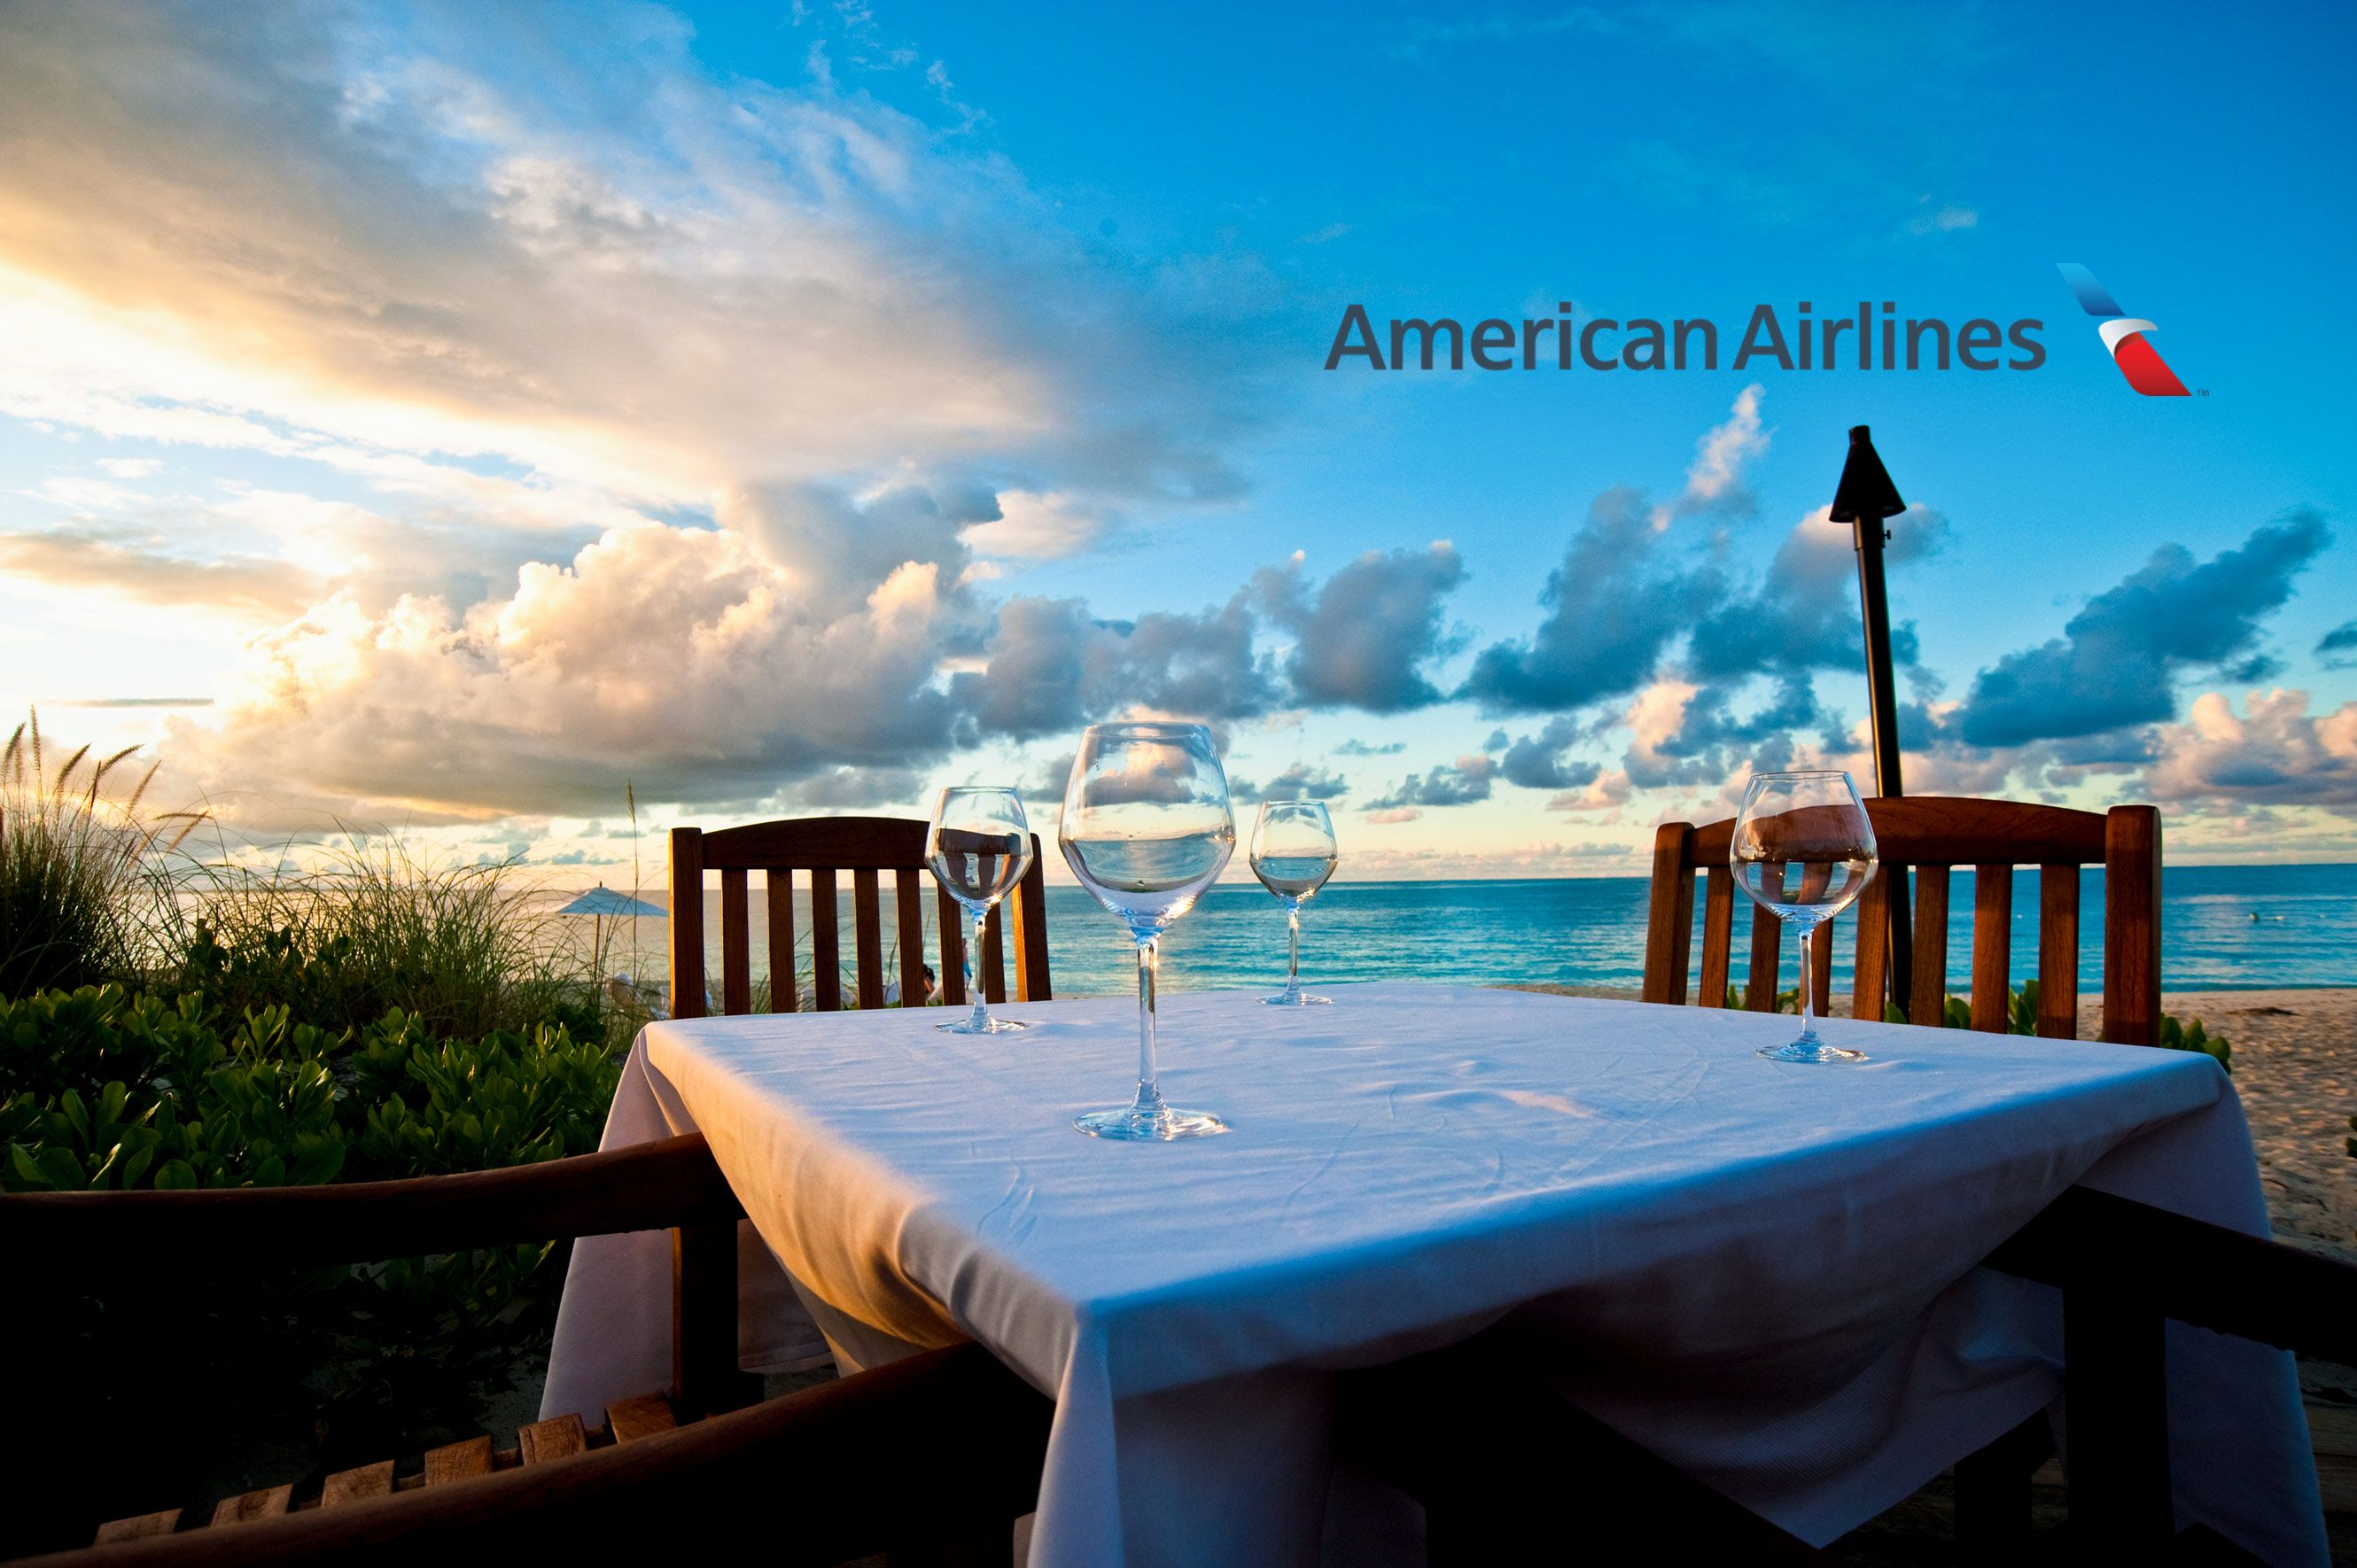 Promotion Tuscany Resort On American Airlines September-October 2014~